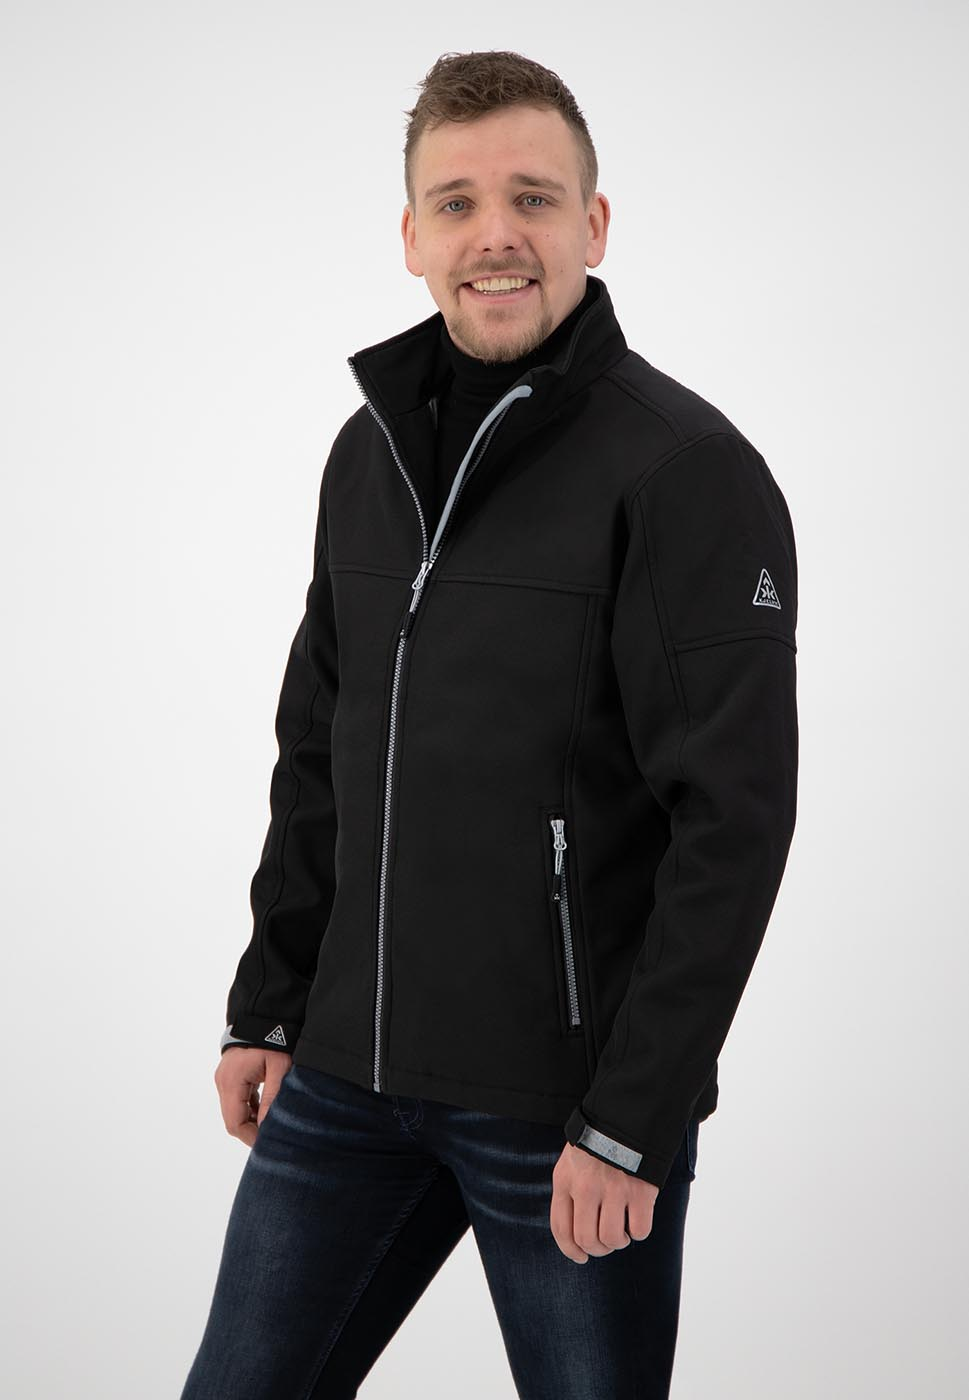 Kjelvik Scandinavian Clothing - Men Softshell Odense Black